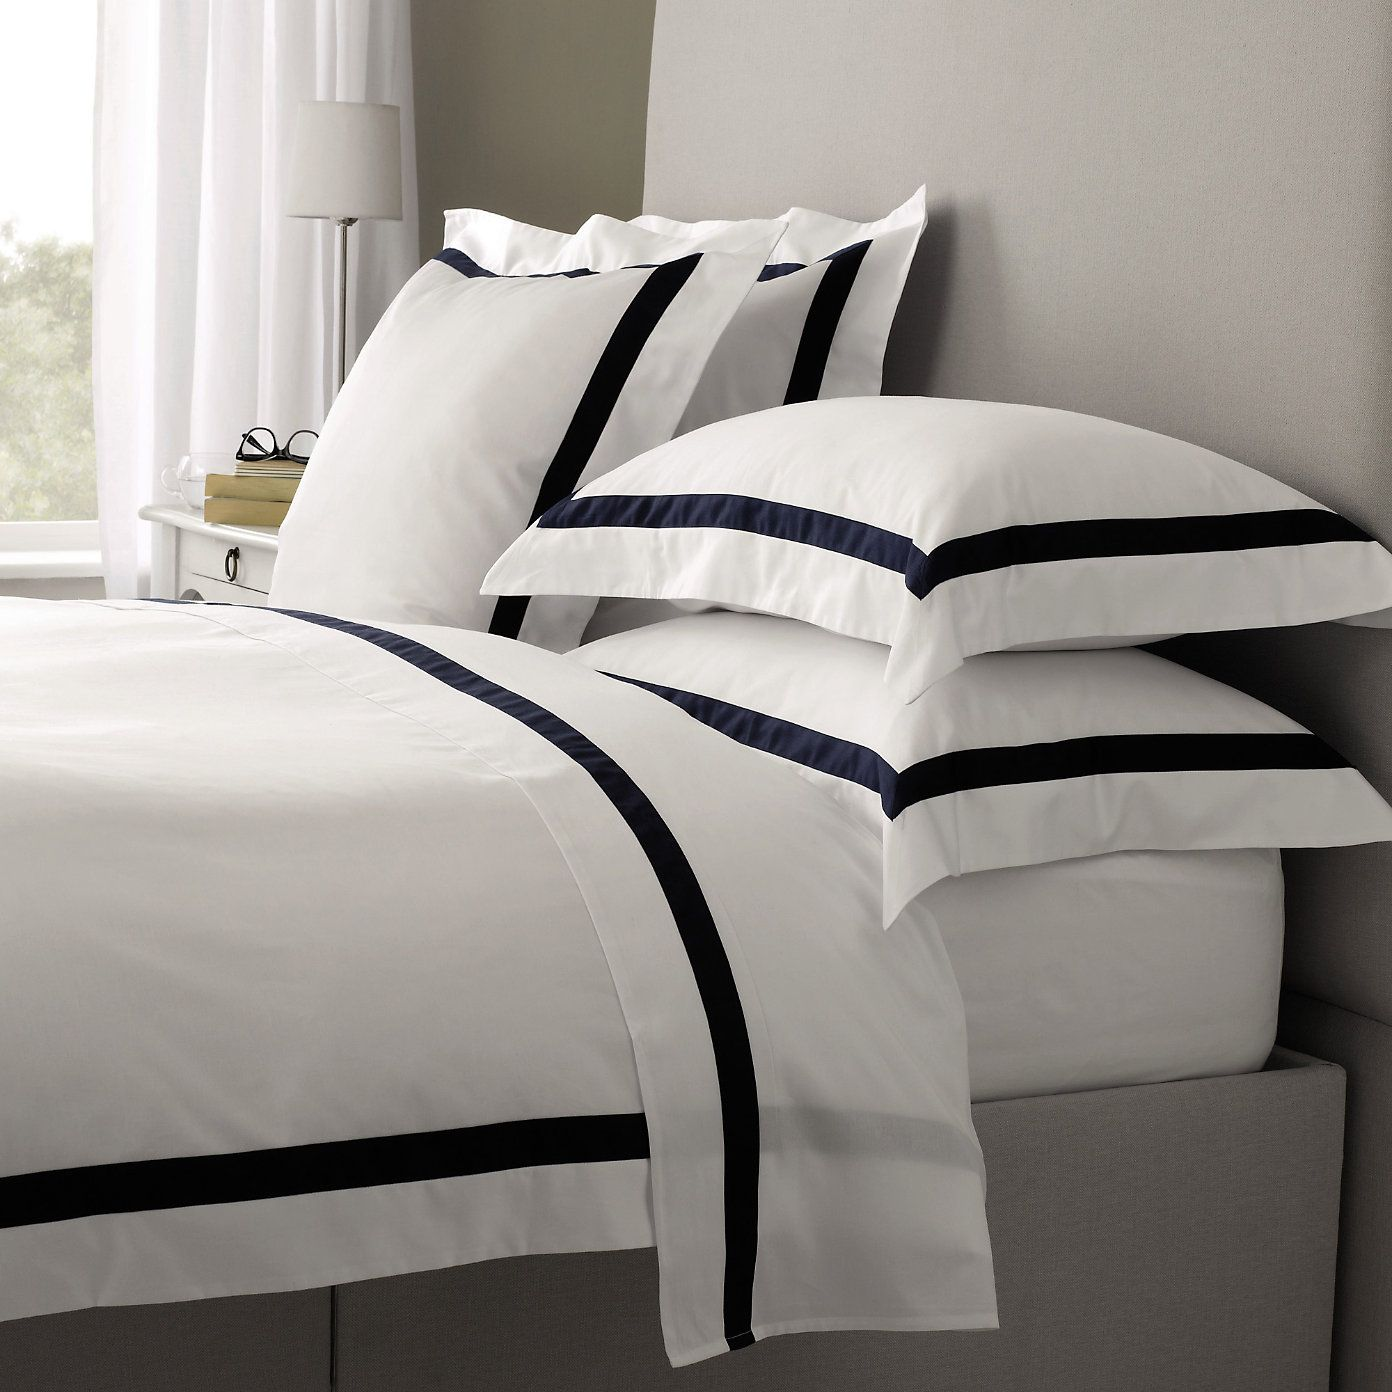 Bed Linen Great Graphic Design With The Addition Of Grosgrain Ribbon